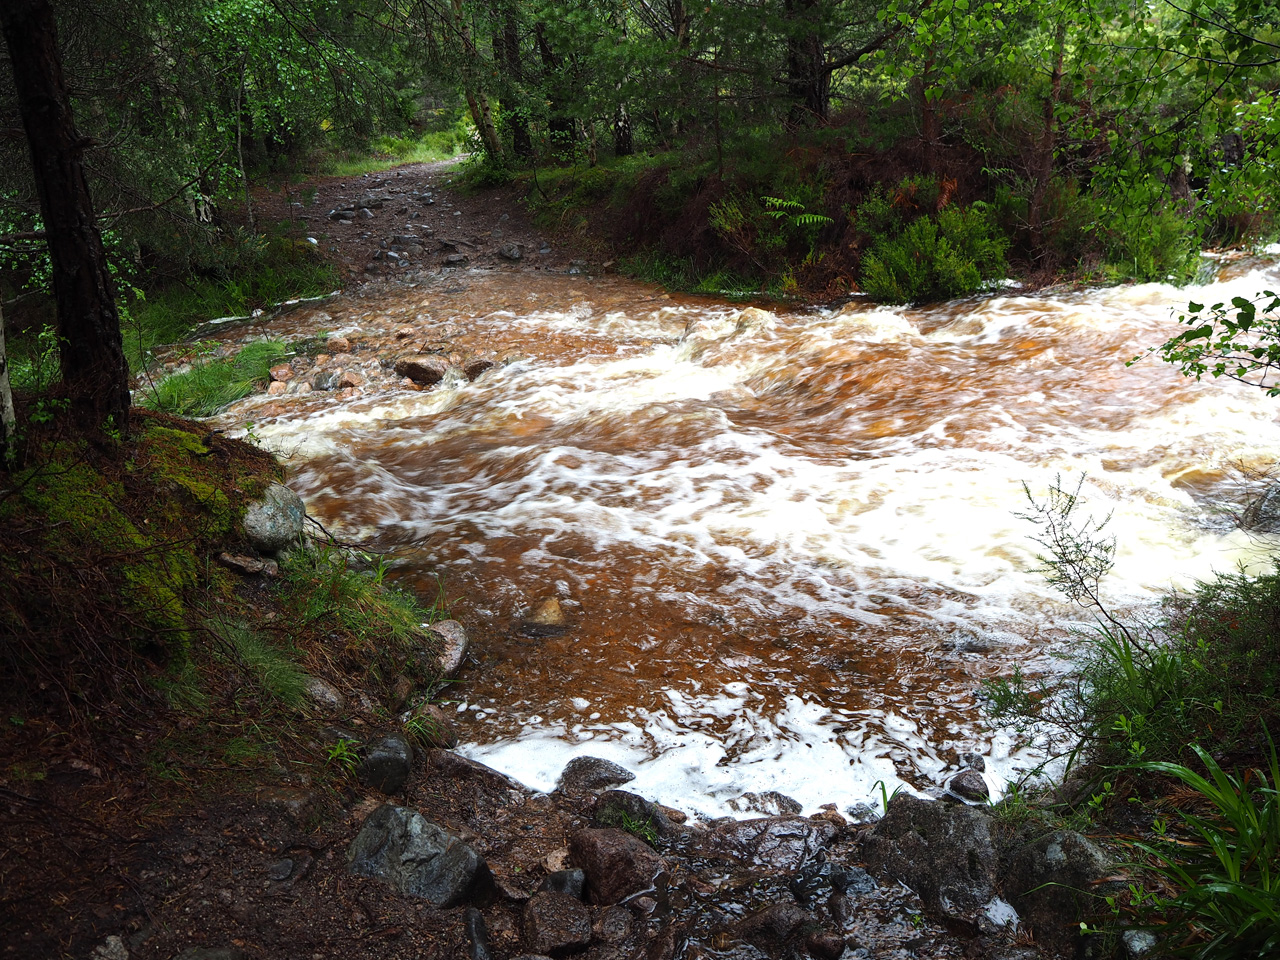 doorwaadbare plaats in de Allt Coire Follais